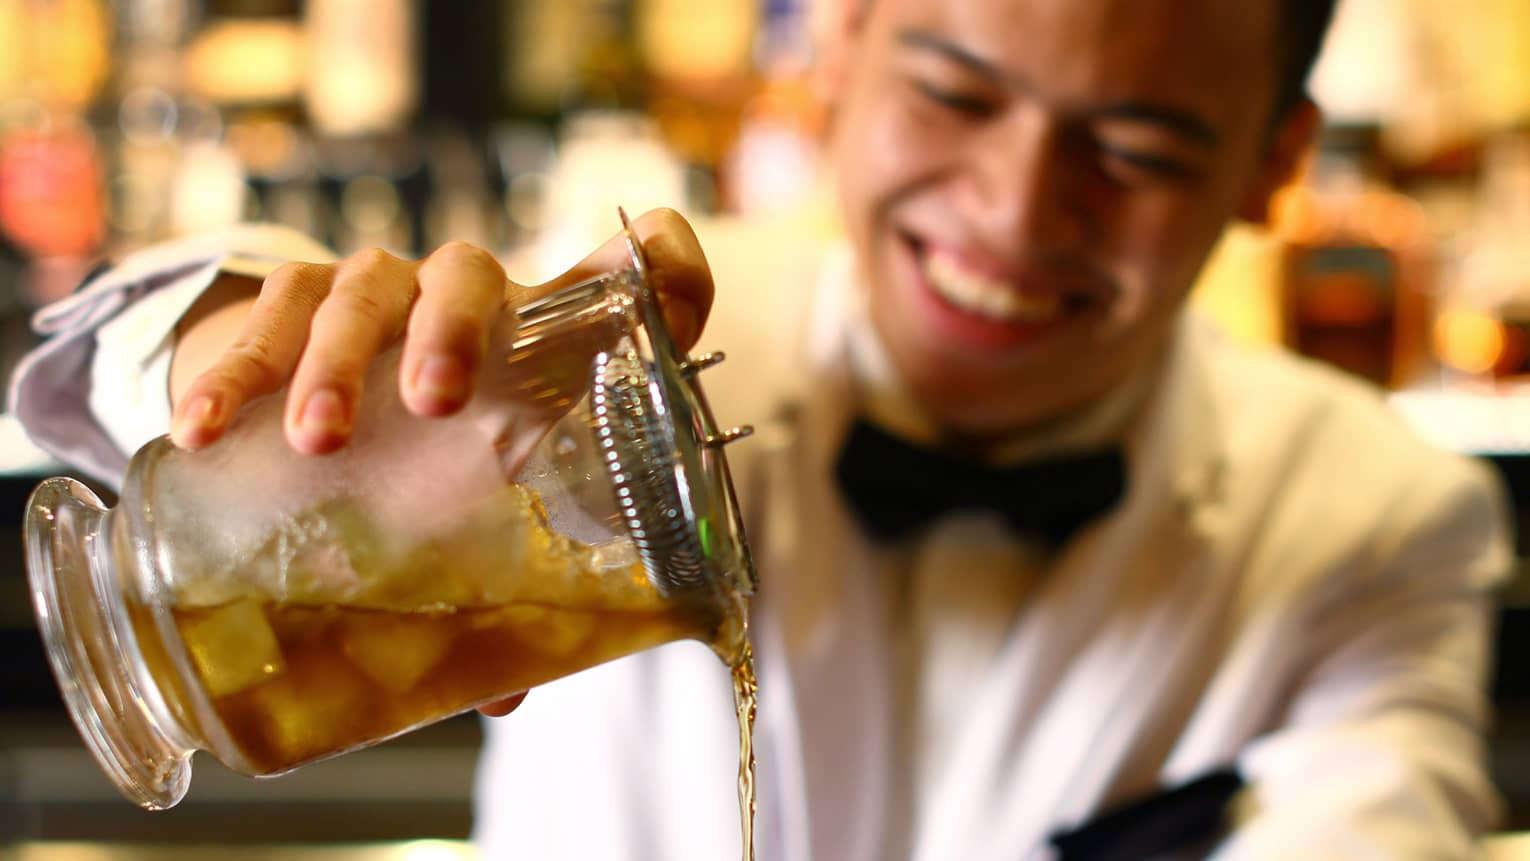 A bartender pours a drink at a Jakarta Hotel bar